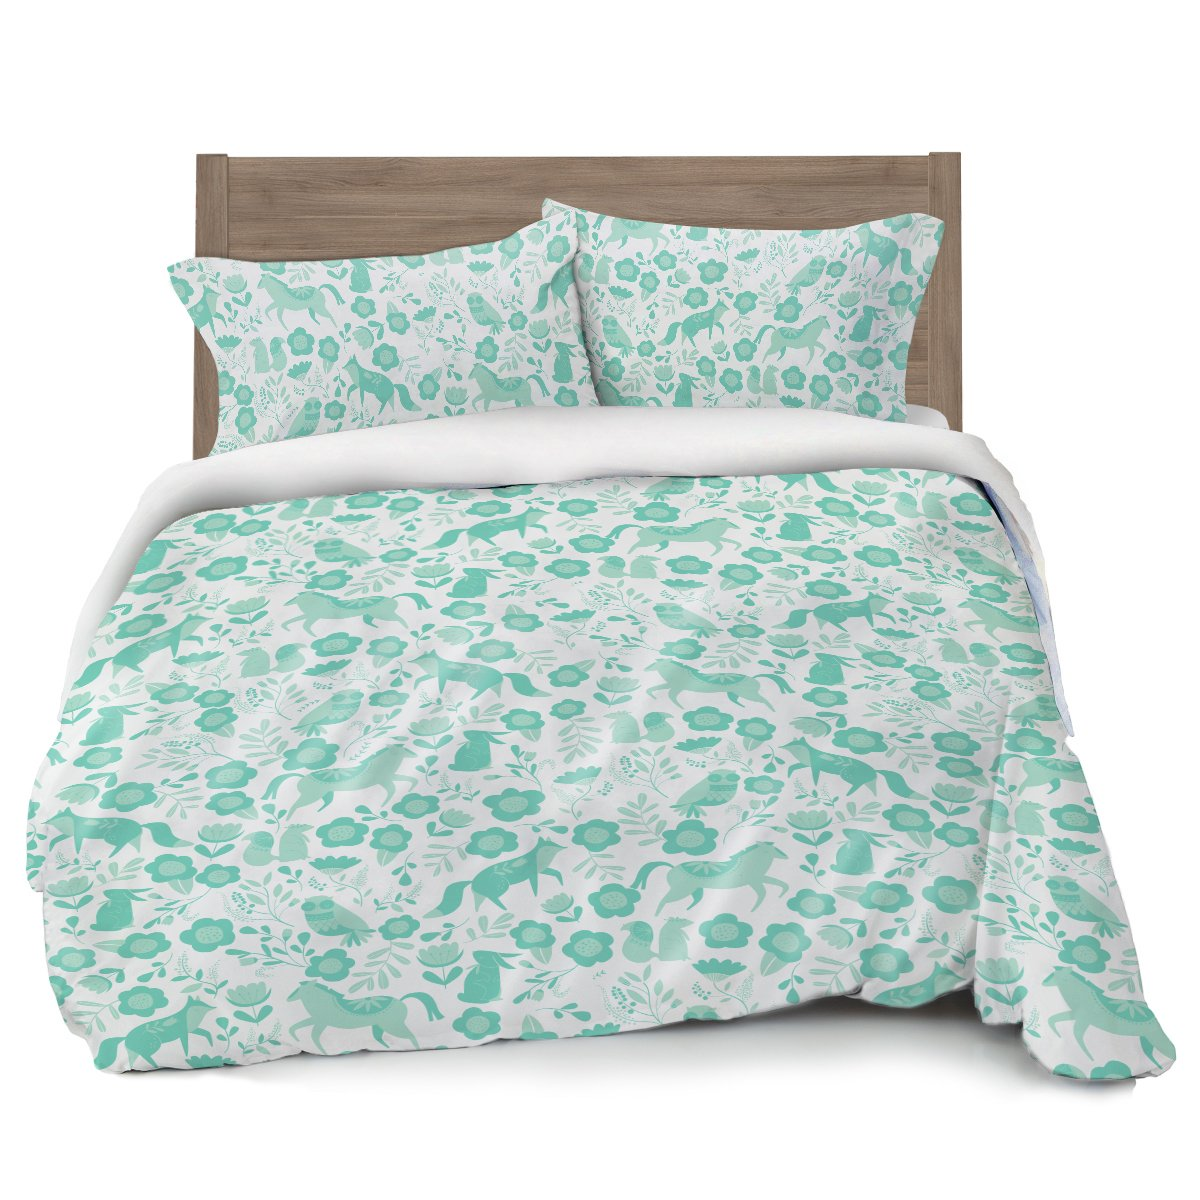 Where the Polka Dots Roam Seafoam Green Folktale Forest Animals Duvet Cover Full/Queen Bedding, White with Teal Woodland Creatures